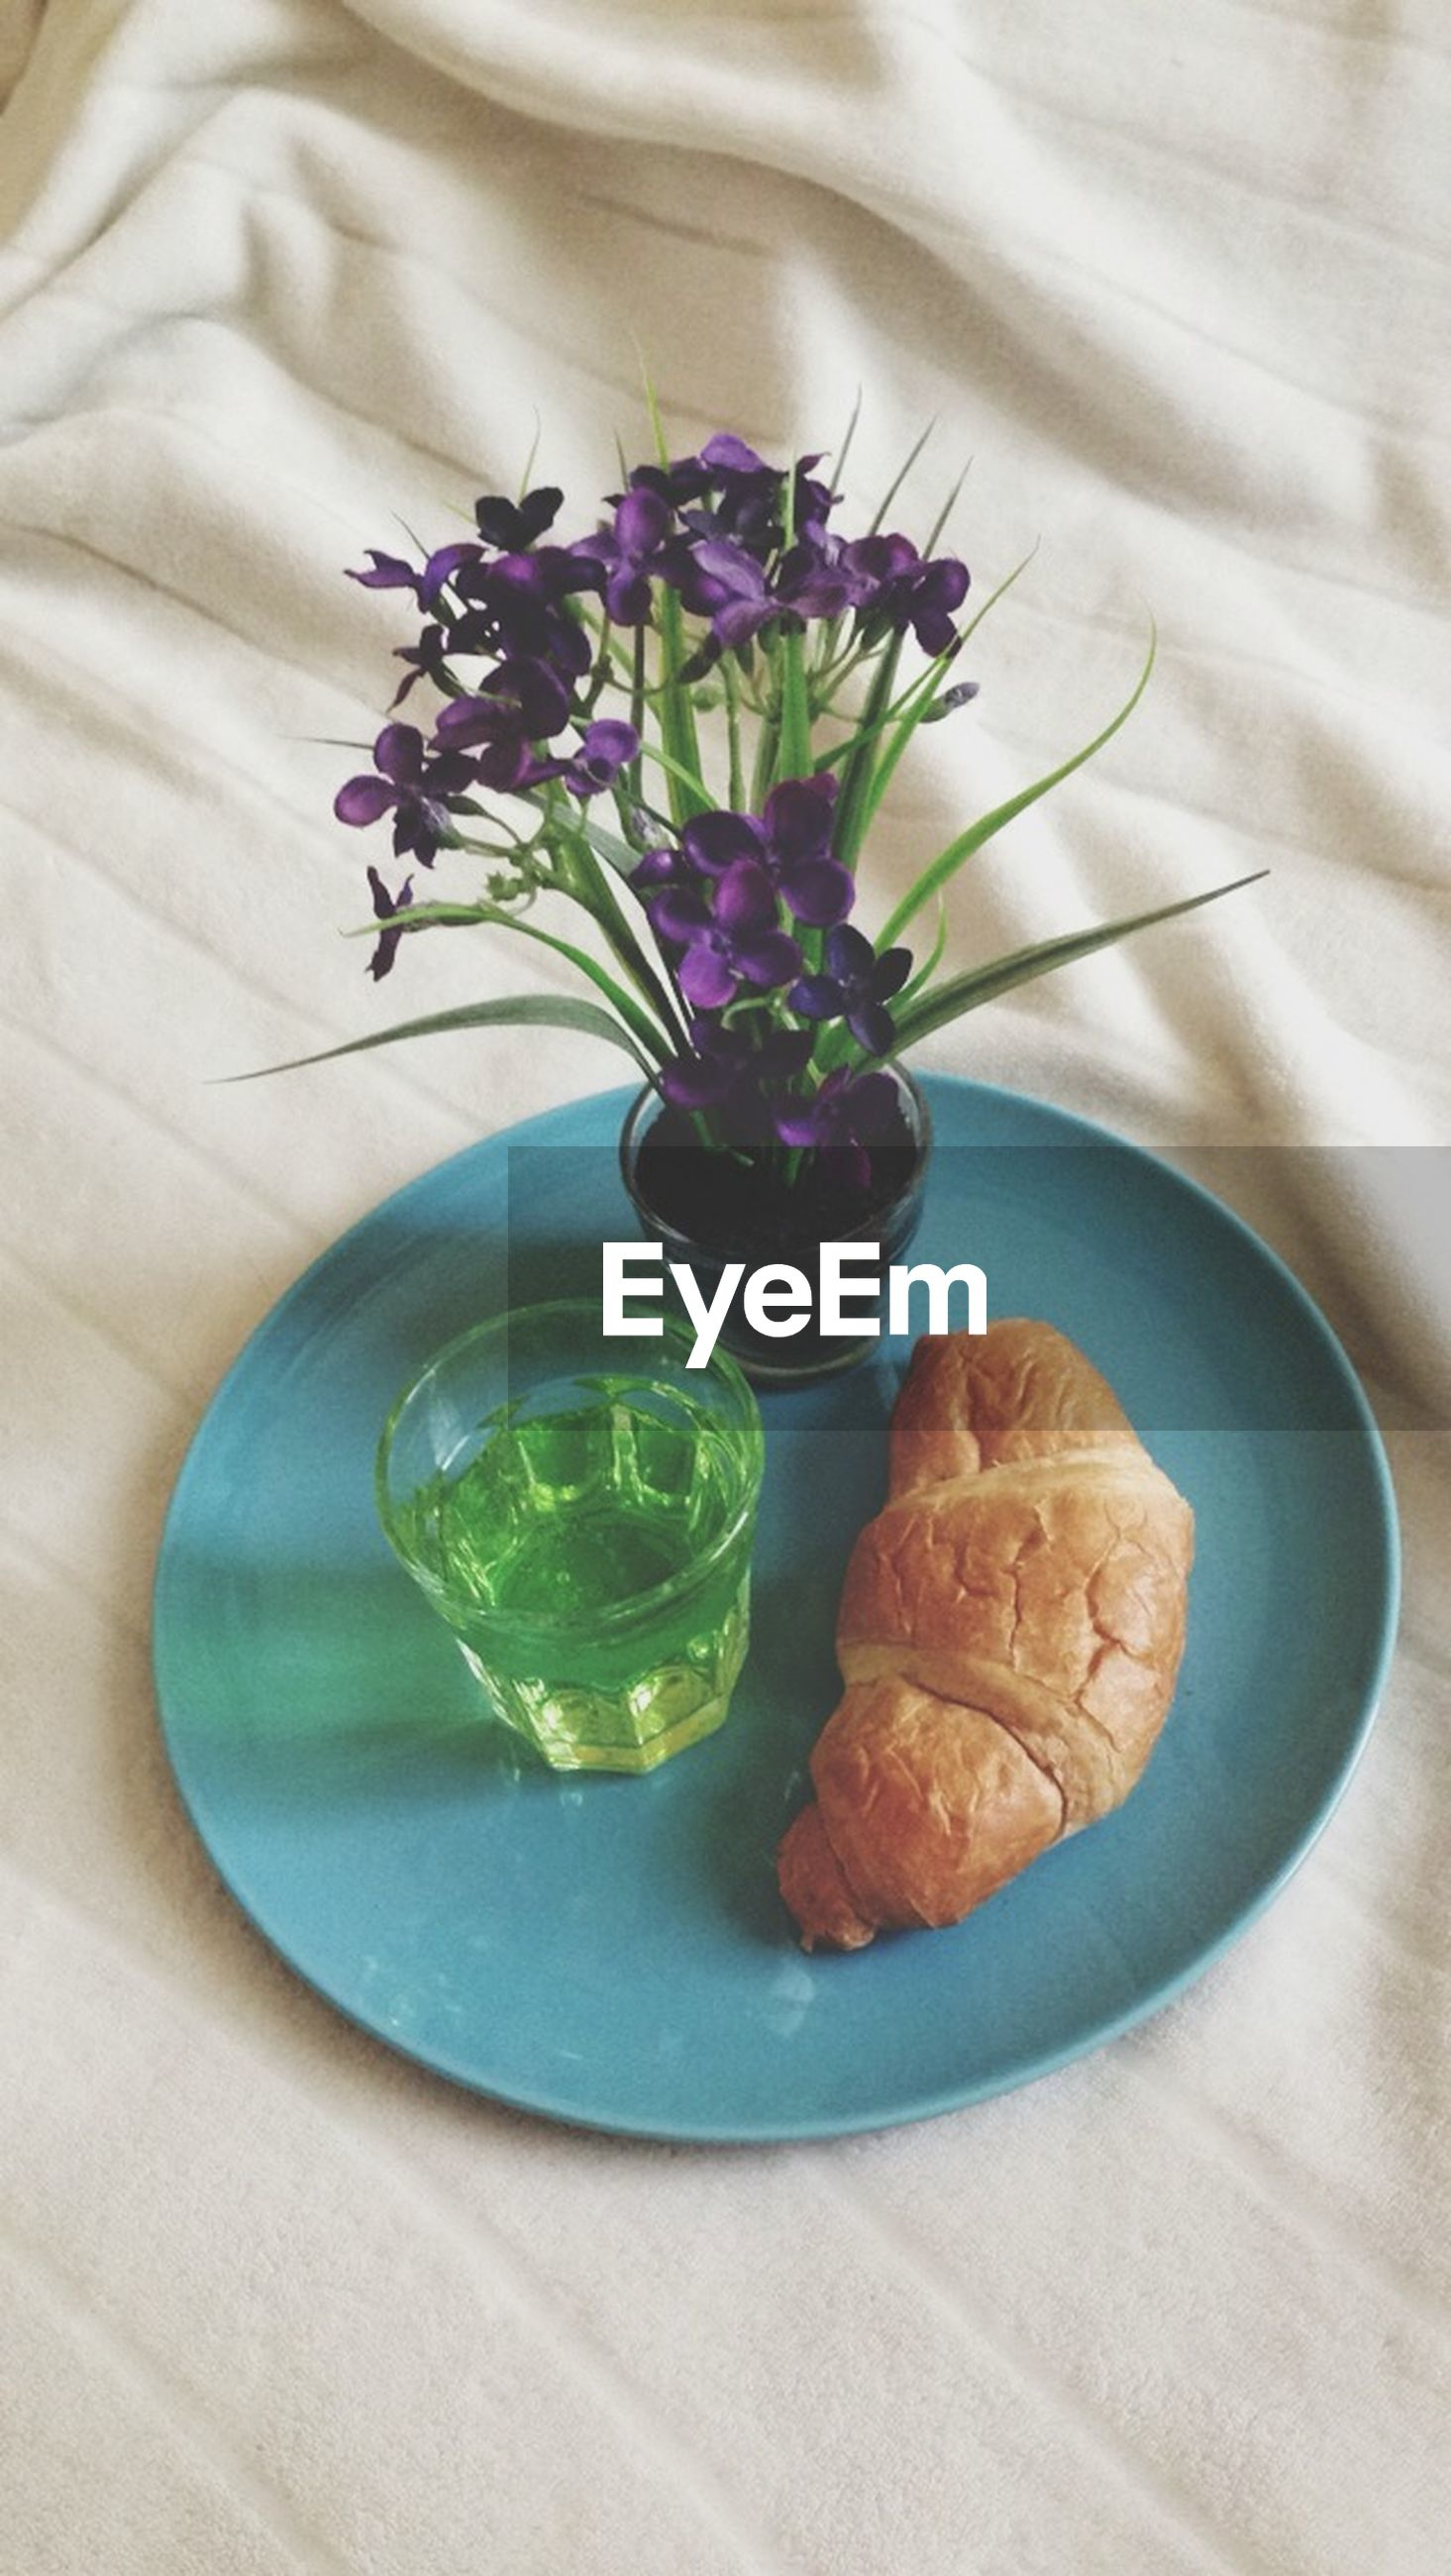 indoors, flower, freshness, table, high angle view, still life, vase, close-up, fragility, leaf, no people, glass - material, potted plant, petal, home interior, plant, directly above, flower head, drink, food and drink